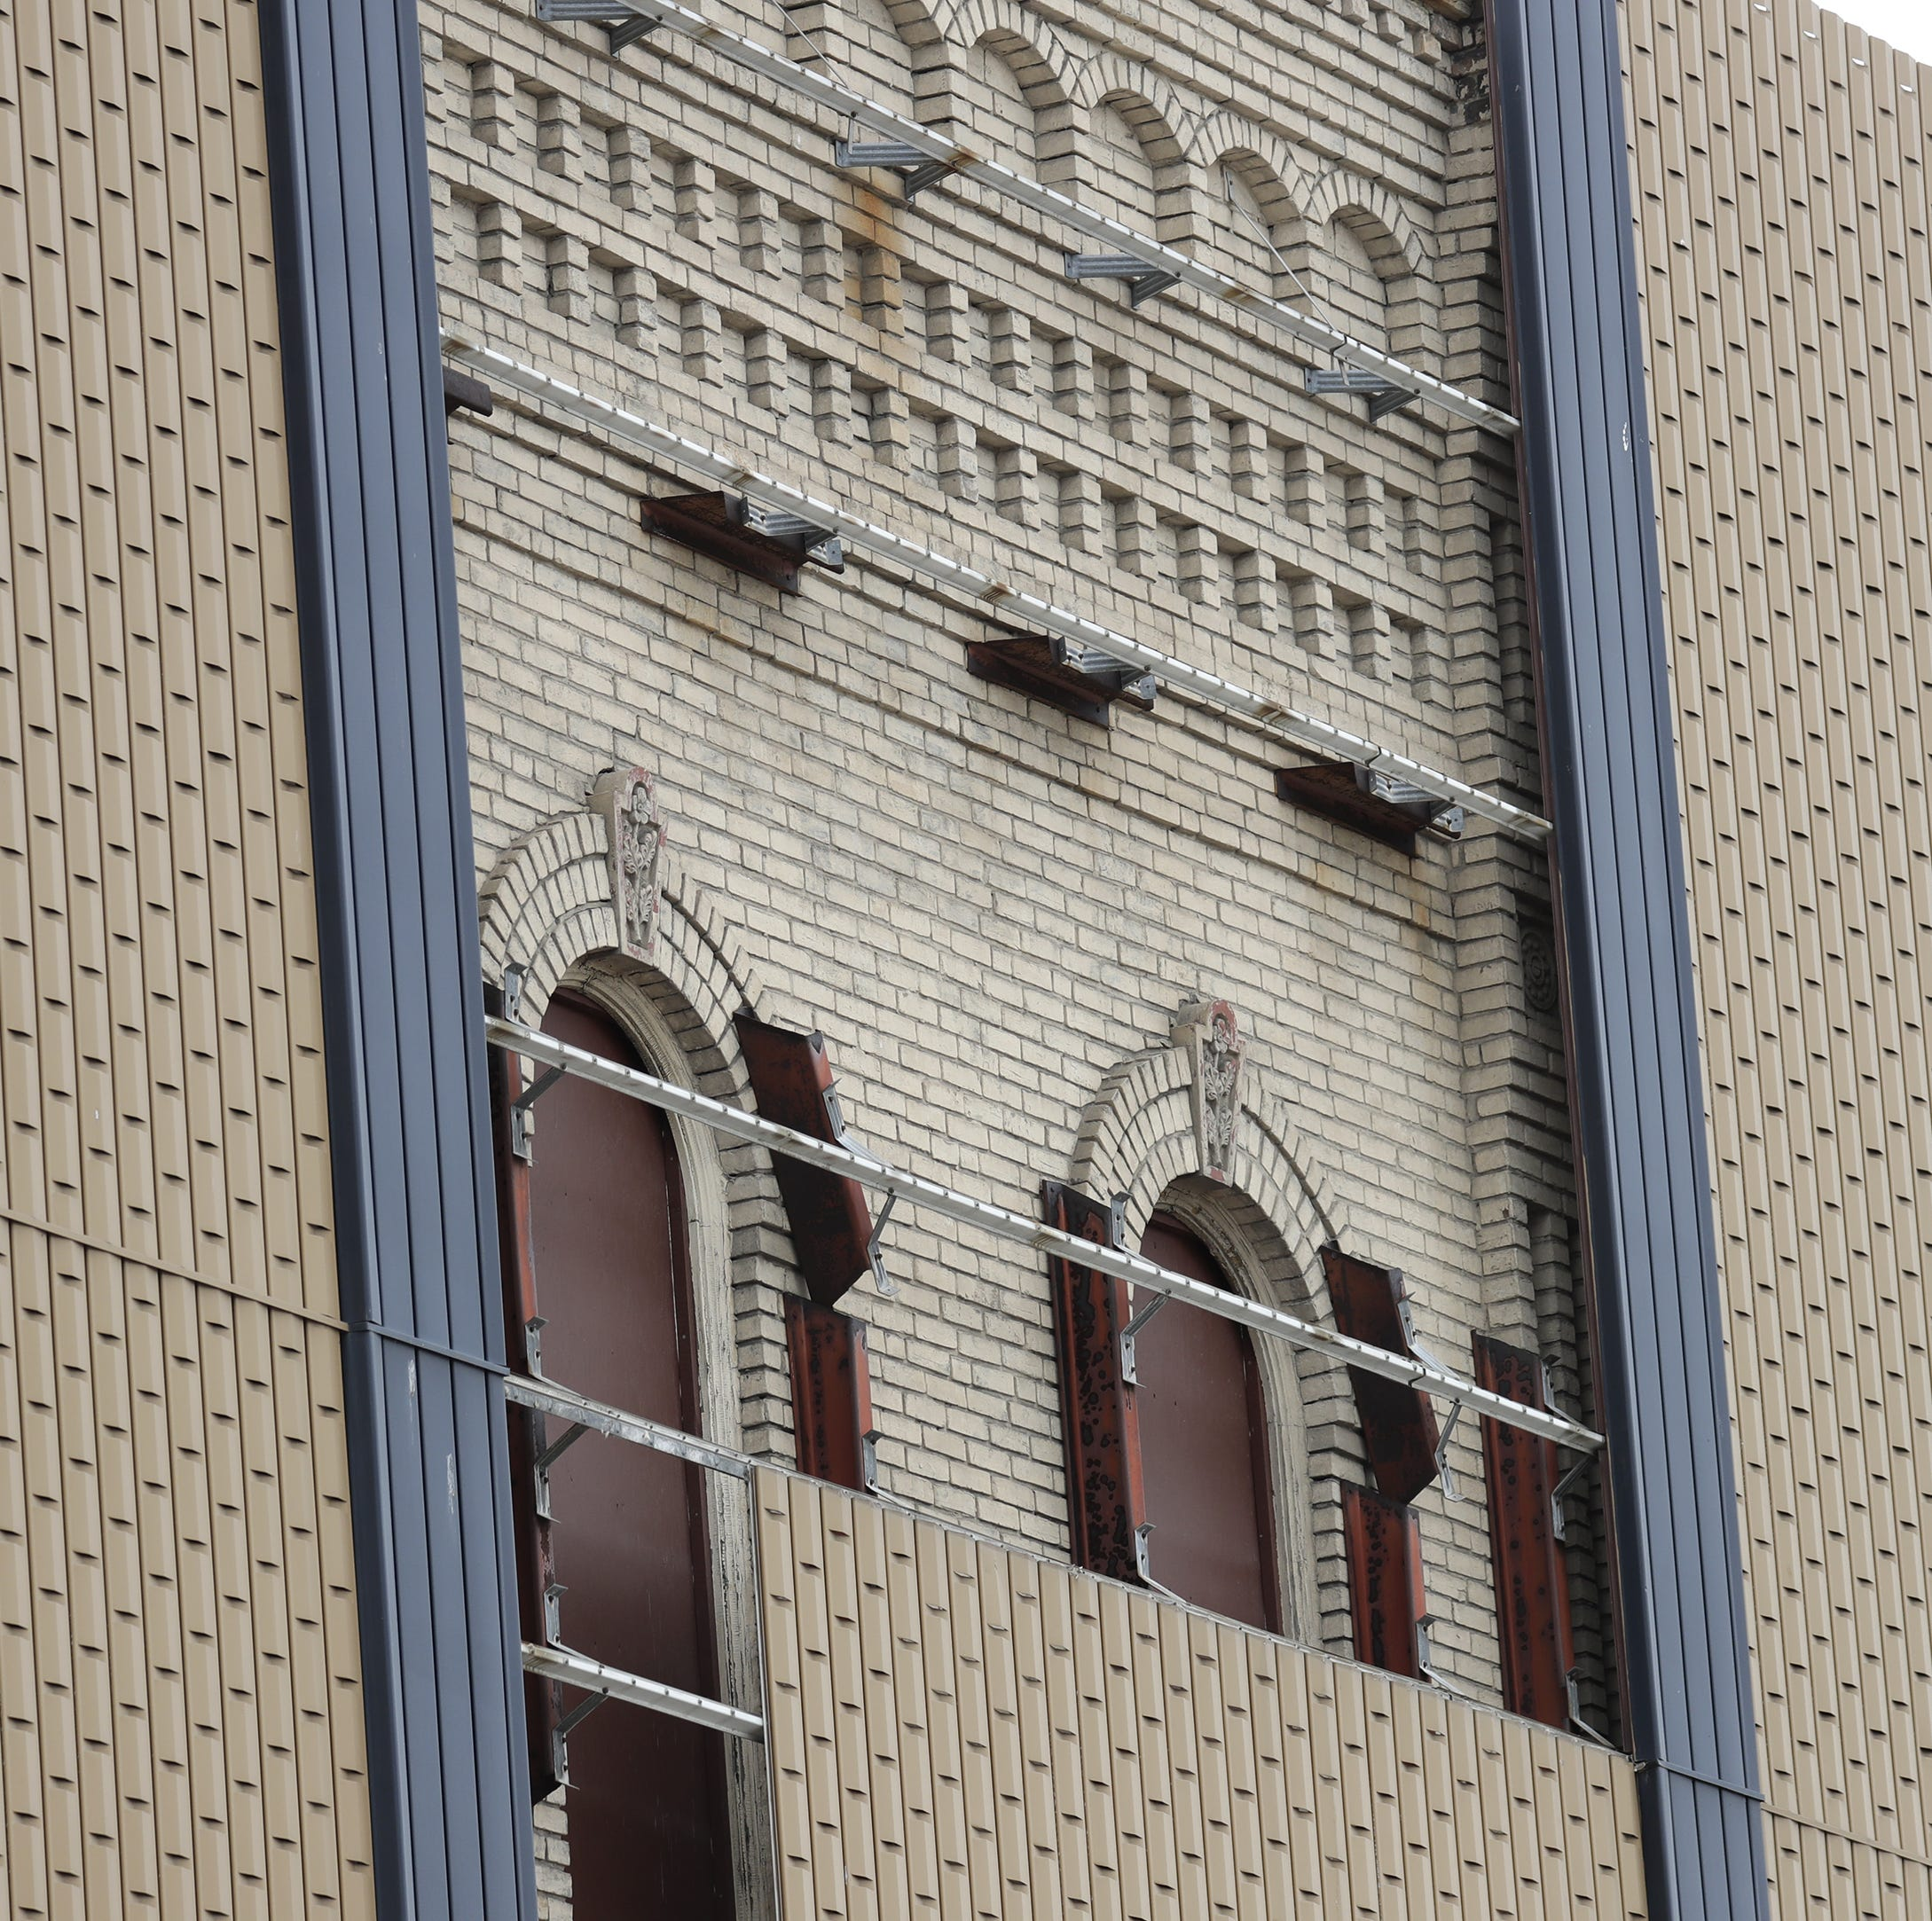 Gabriel Furniture building's facade is coming down, revealing historic detailed brickwork